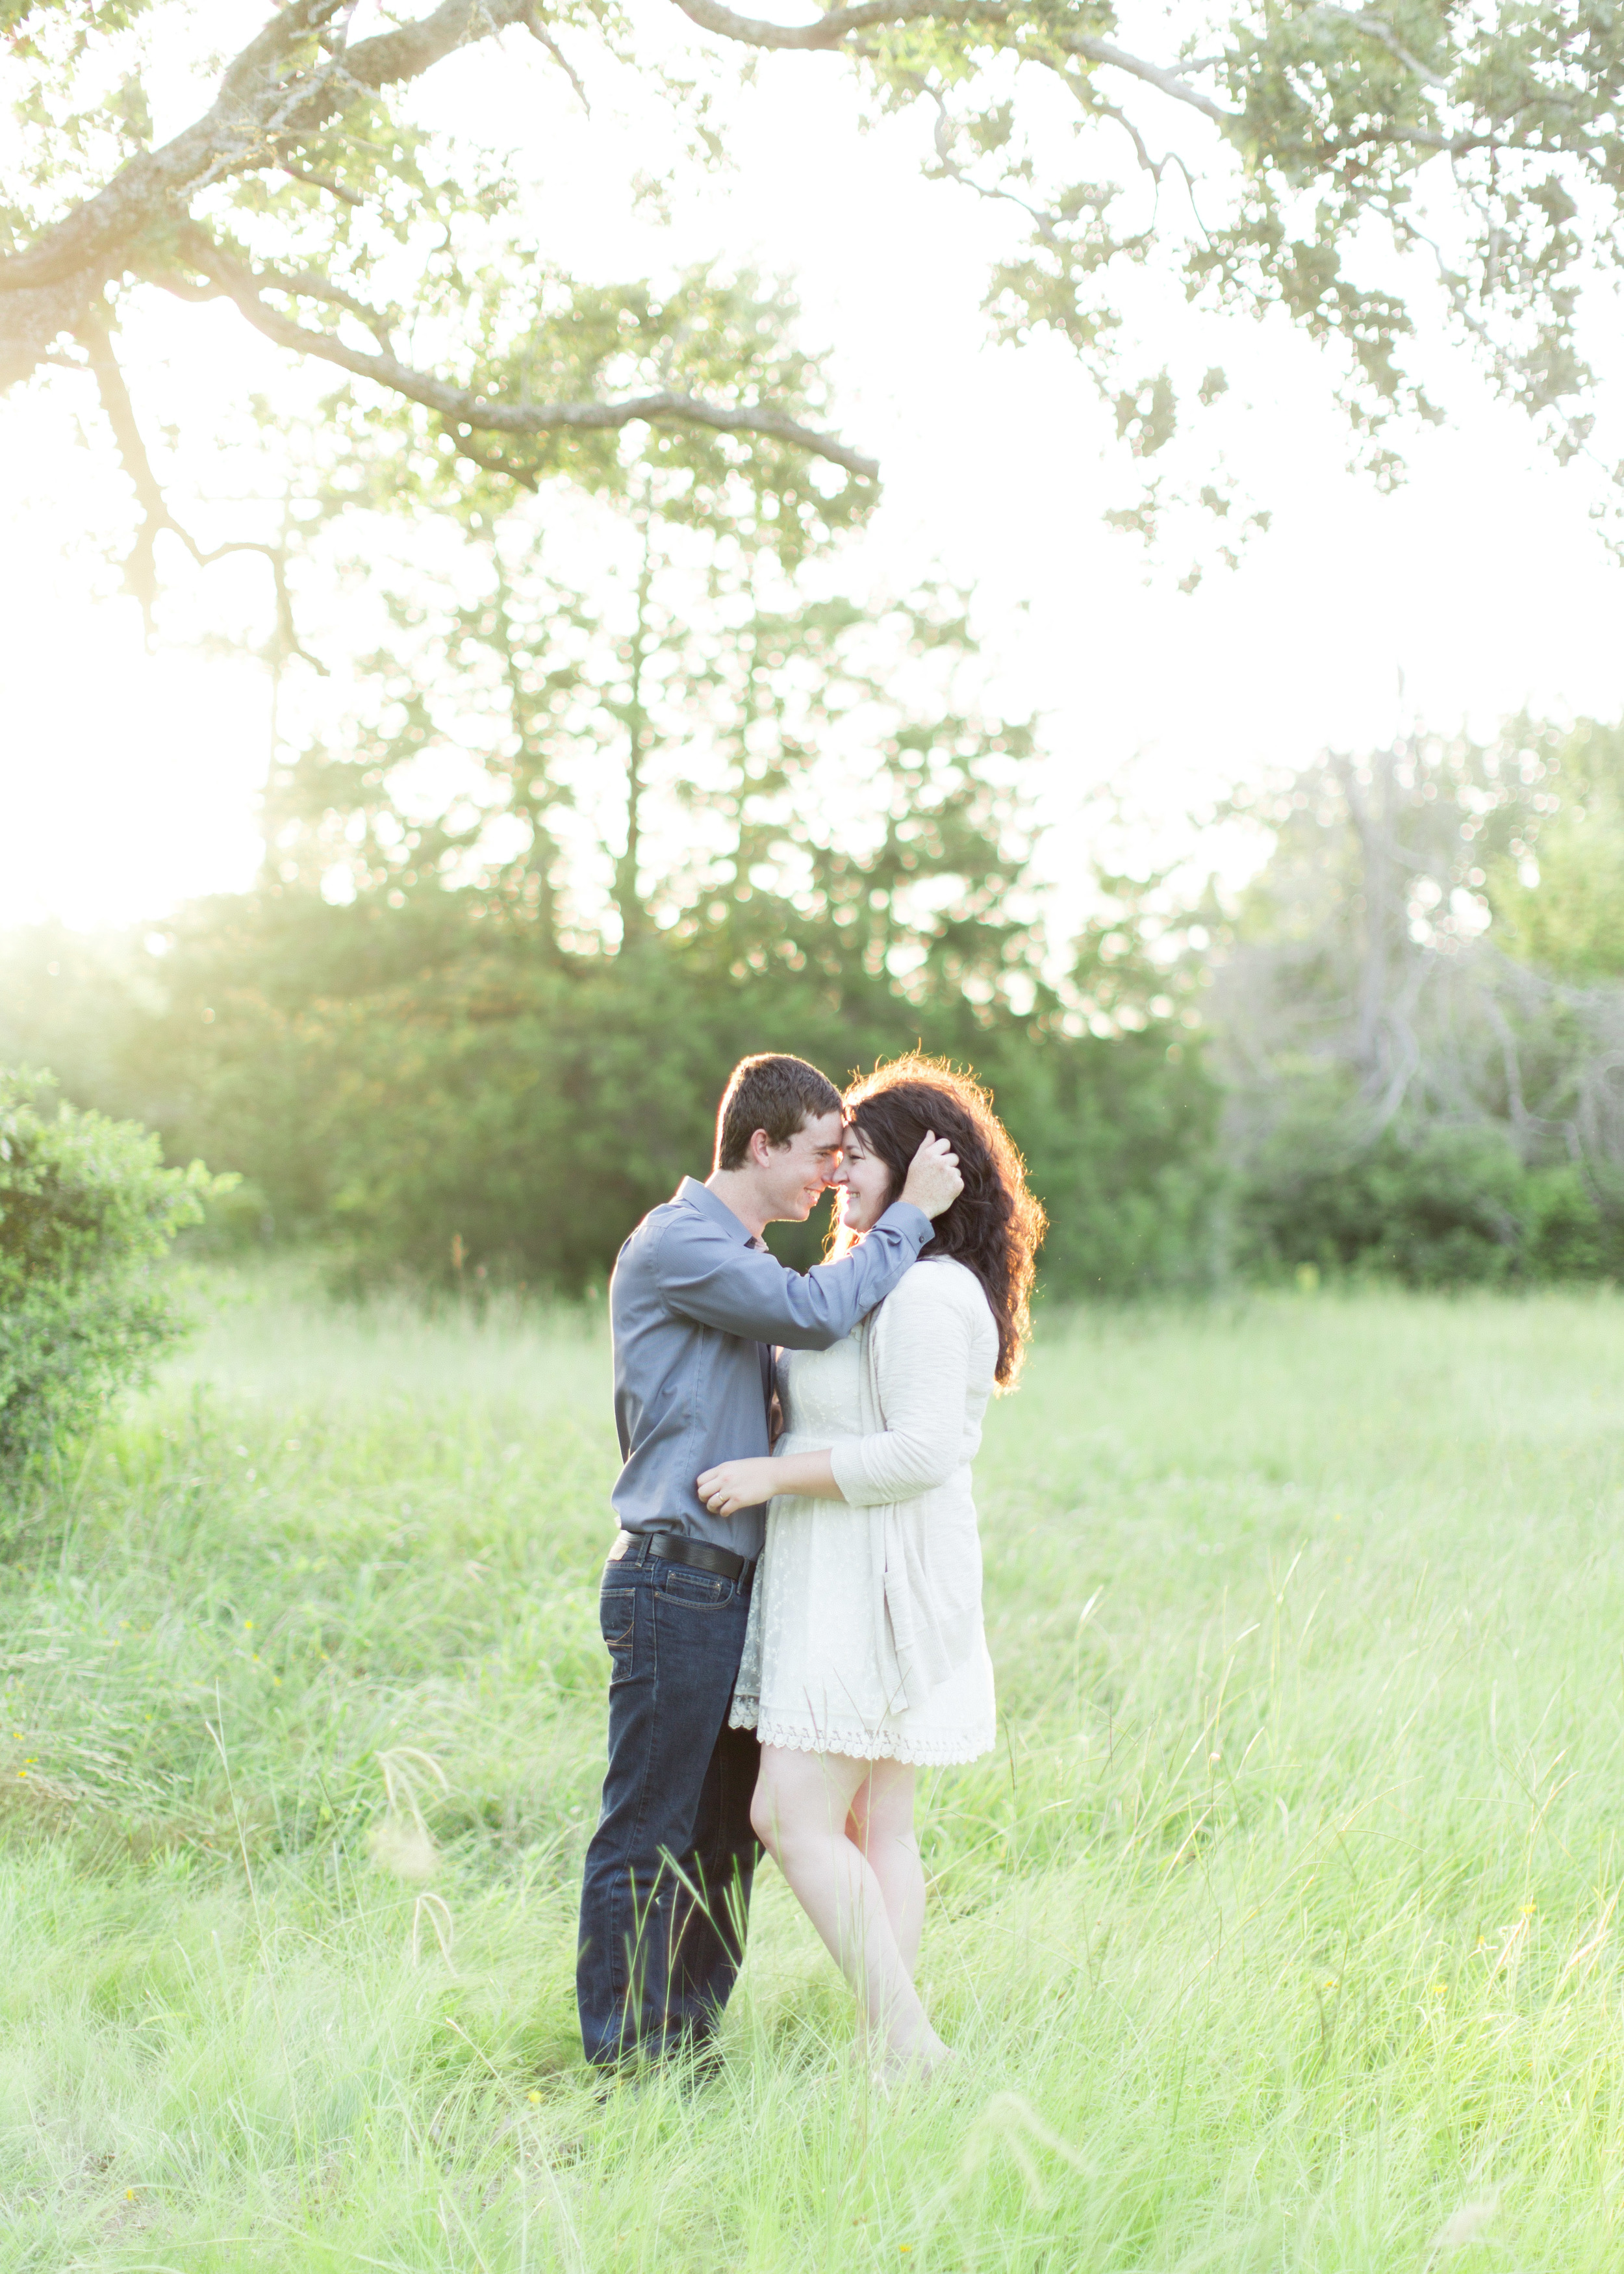 Joe+Elizabeth Tx Engagements-93.jpg